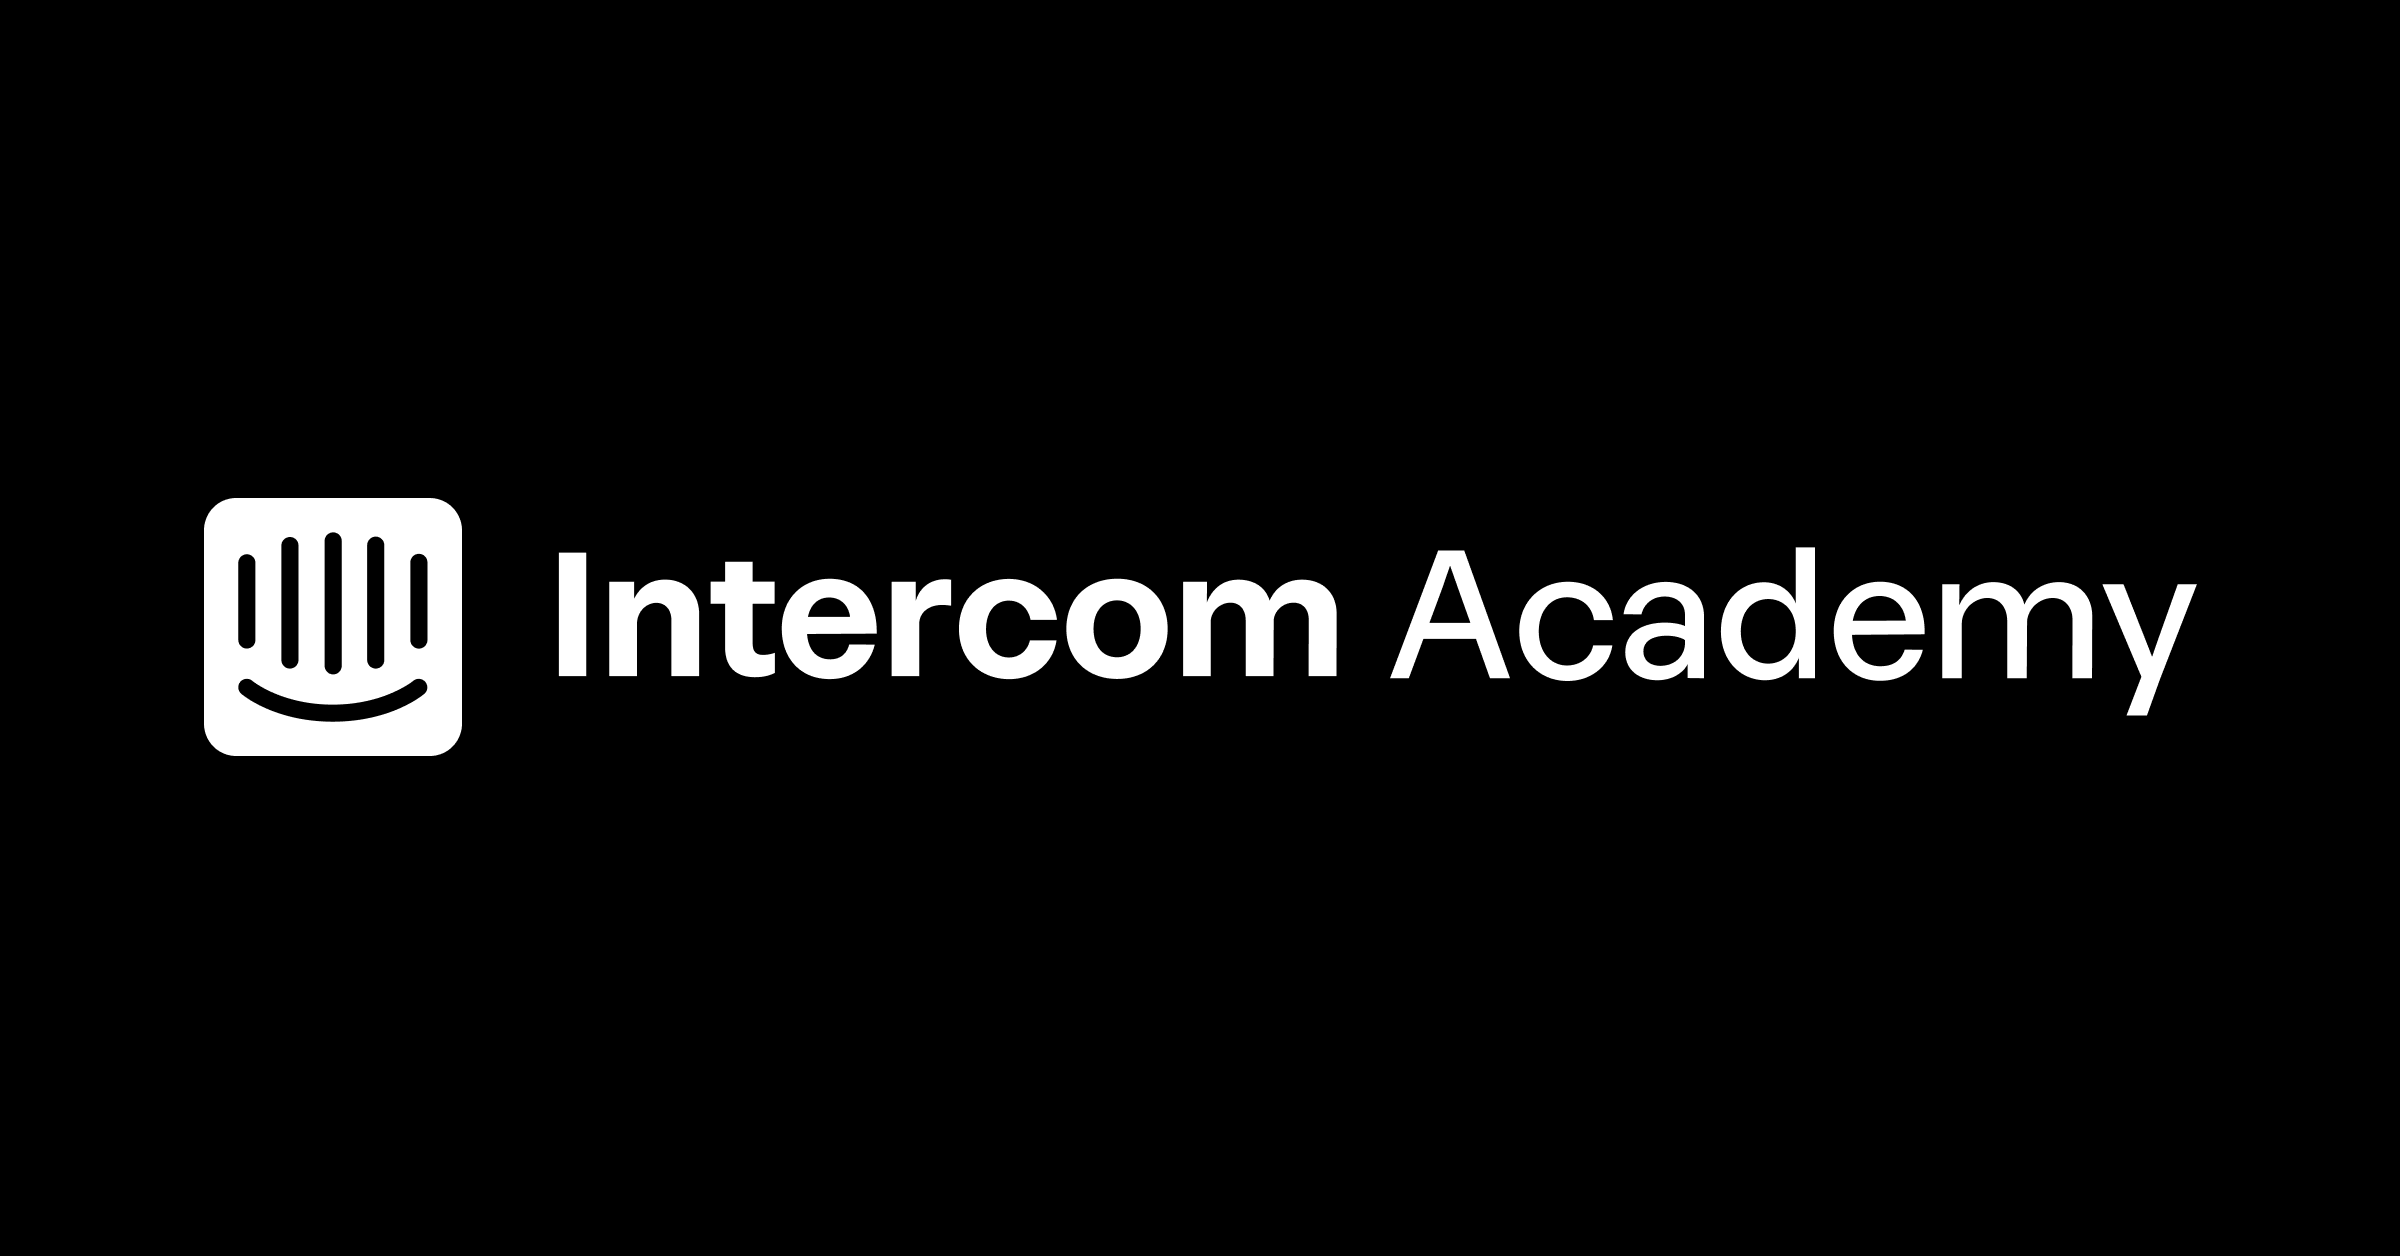 Intercom Academy